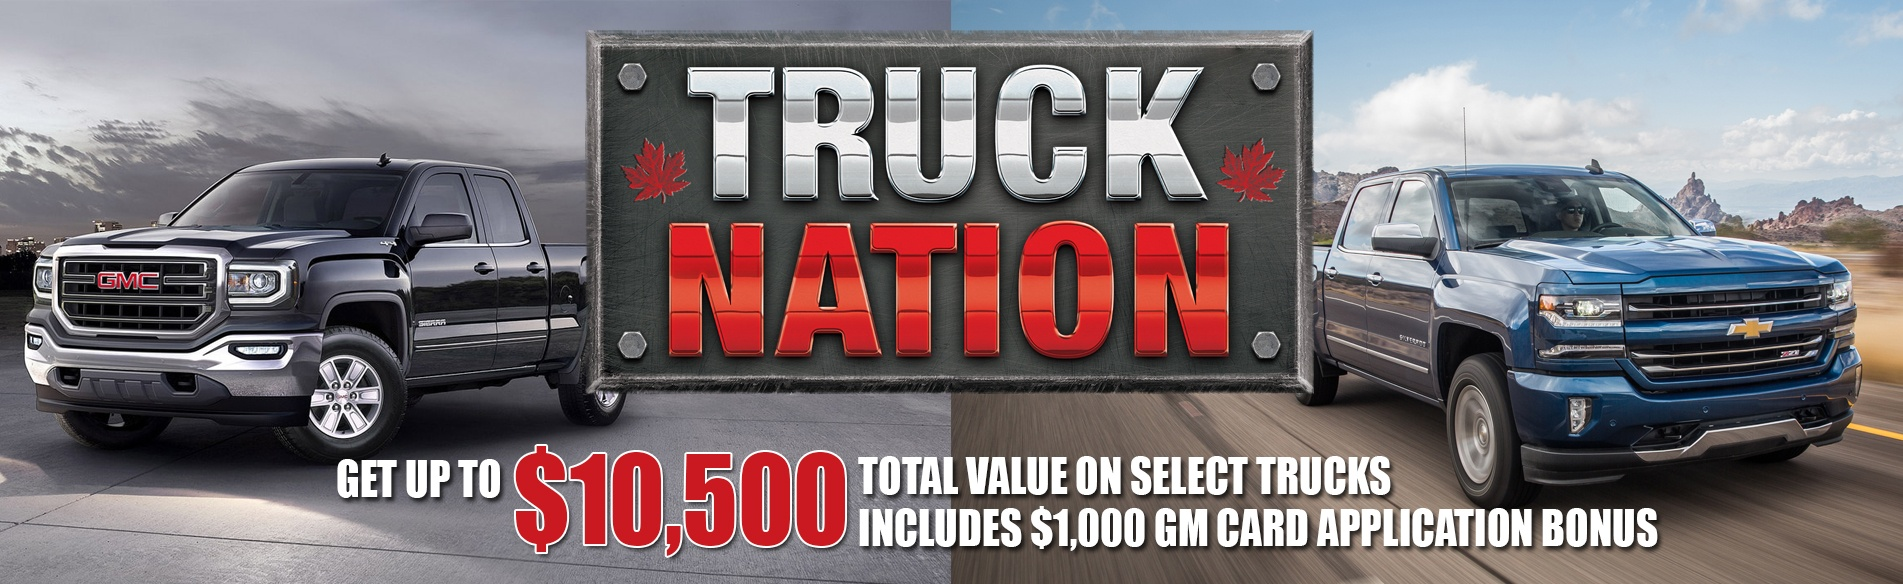 Georgetown Chevrolet GMC Truck Nation event with great deals on Chevrolet Silverado and GMC Sierra in Georgetown Ontario